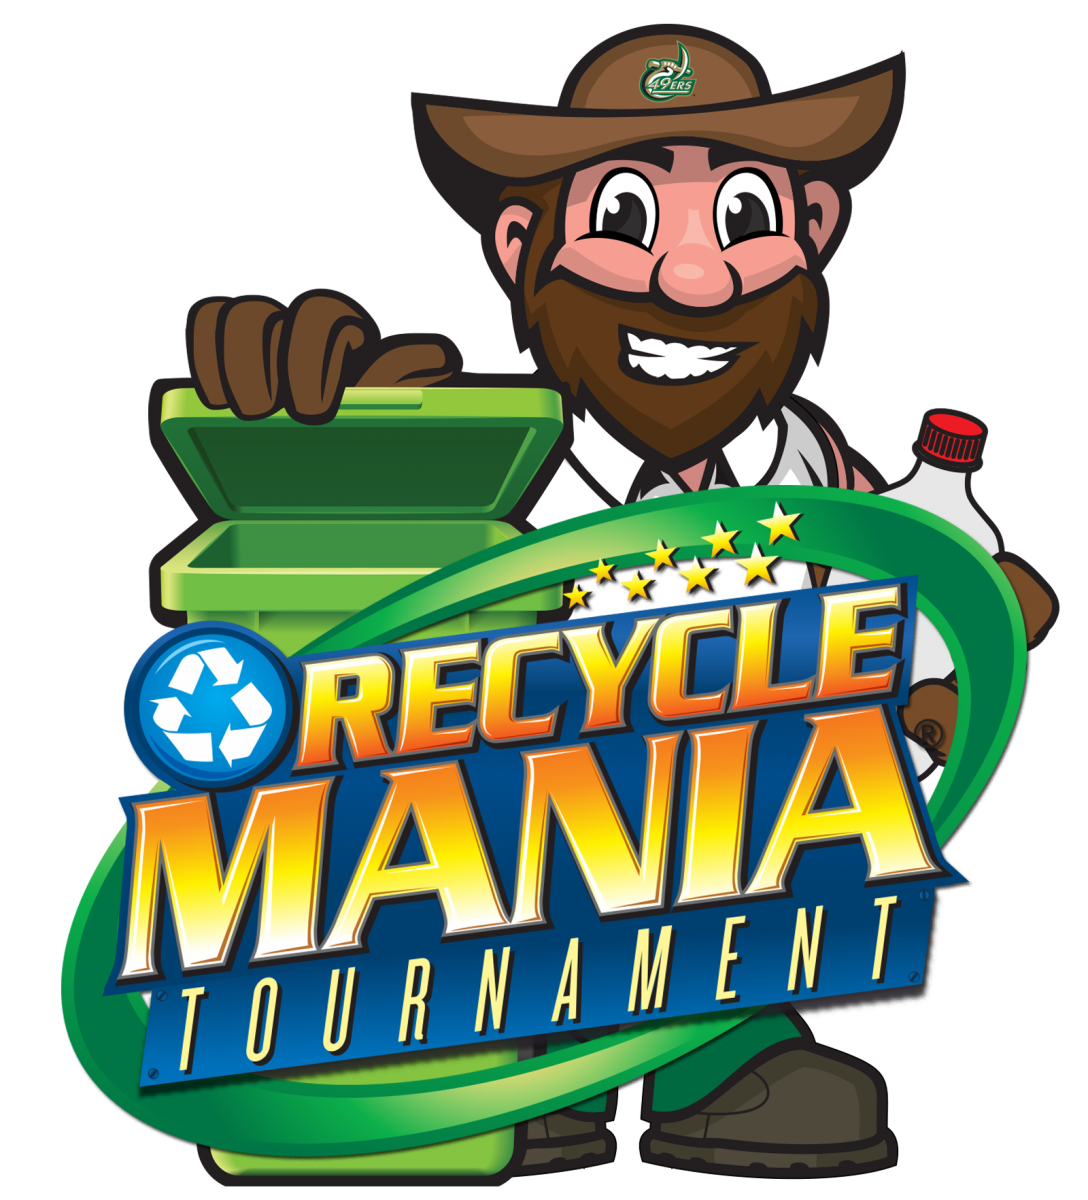 RecycleMania and Norm Logo